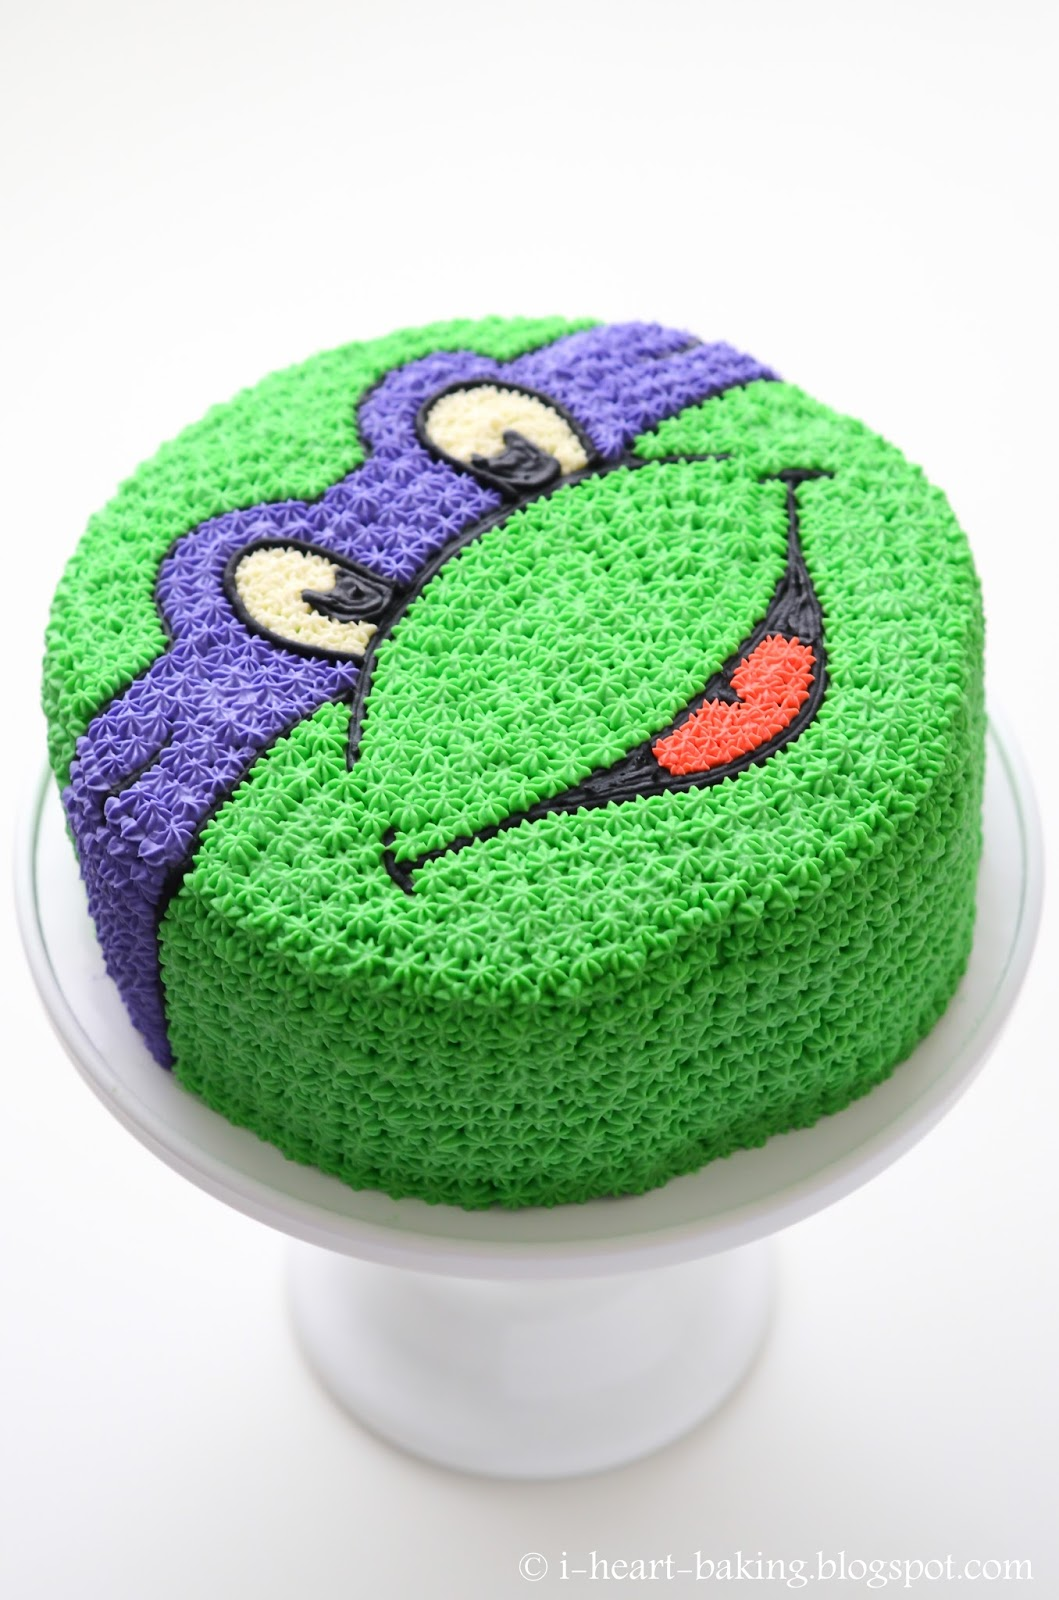 Make A Teenage Mutant Ninja Turtle Cake